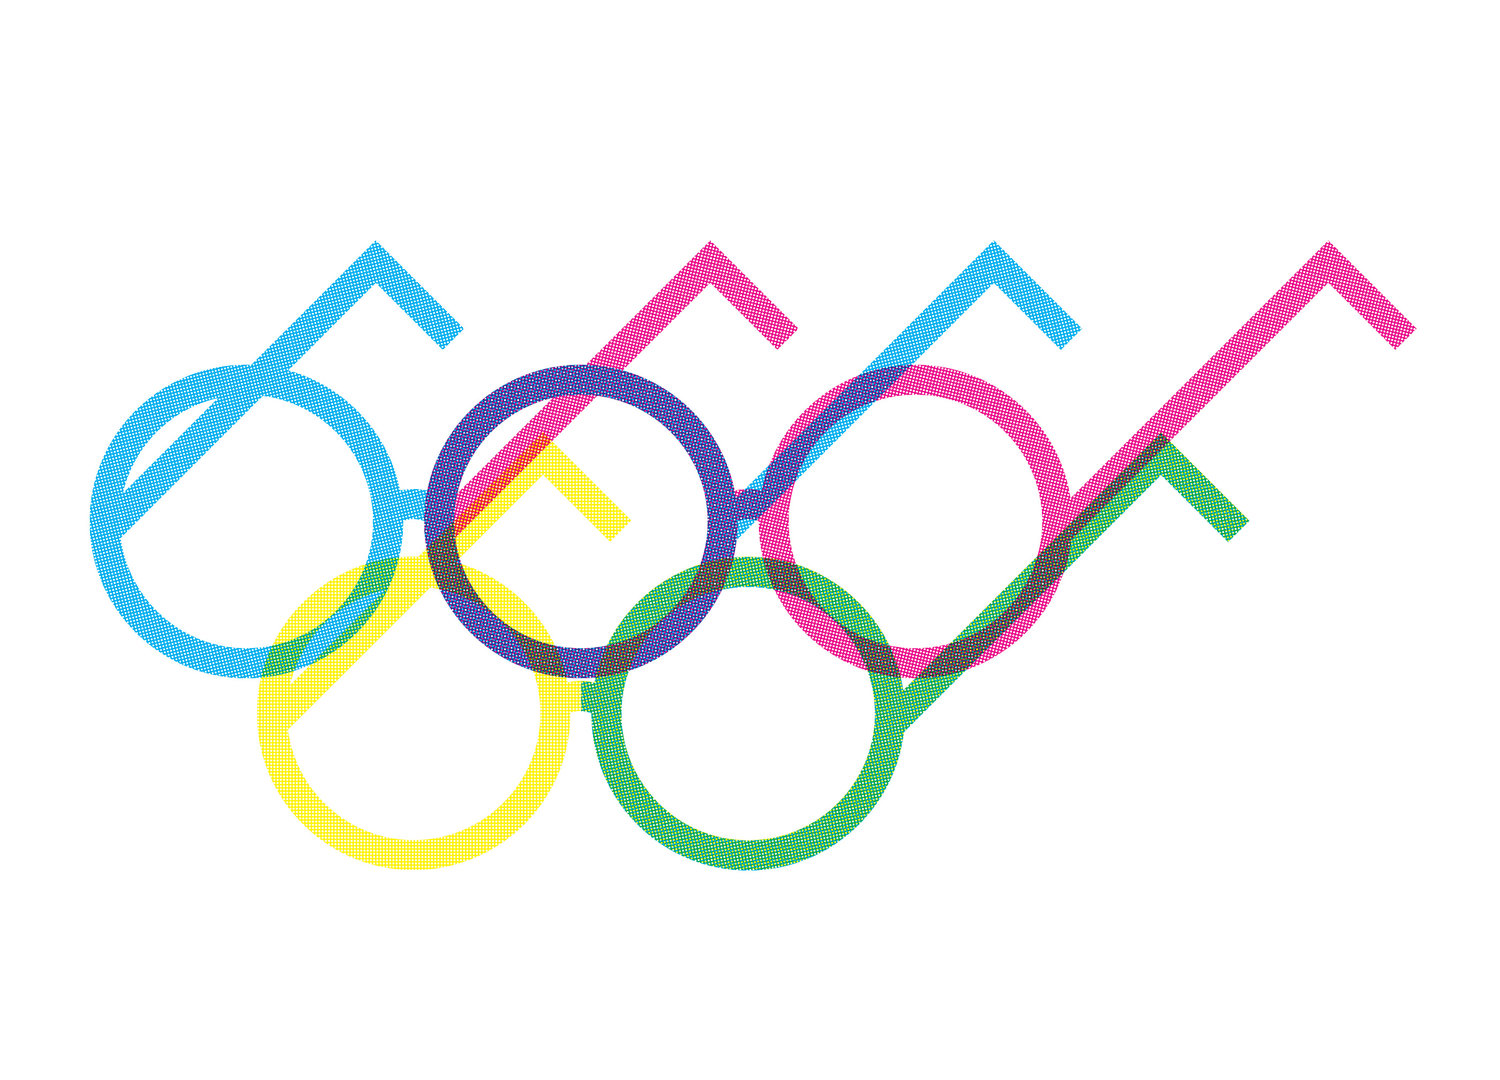 illustration_andre_levy_zhion_vector_conceptual_minimal_sports_reading_press_retro_pictogram_glasses_olympics.jpg